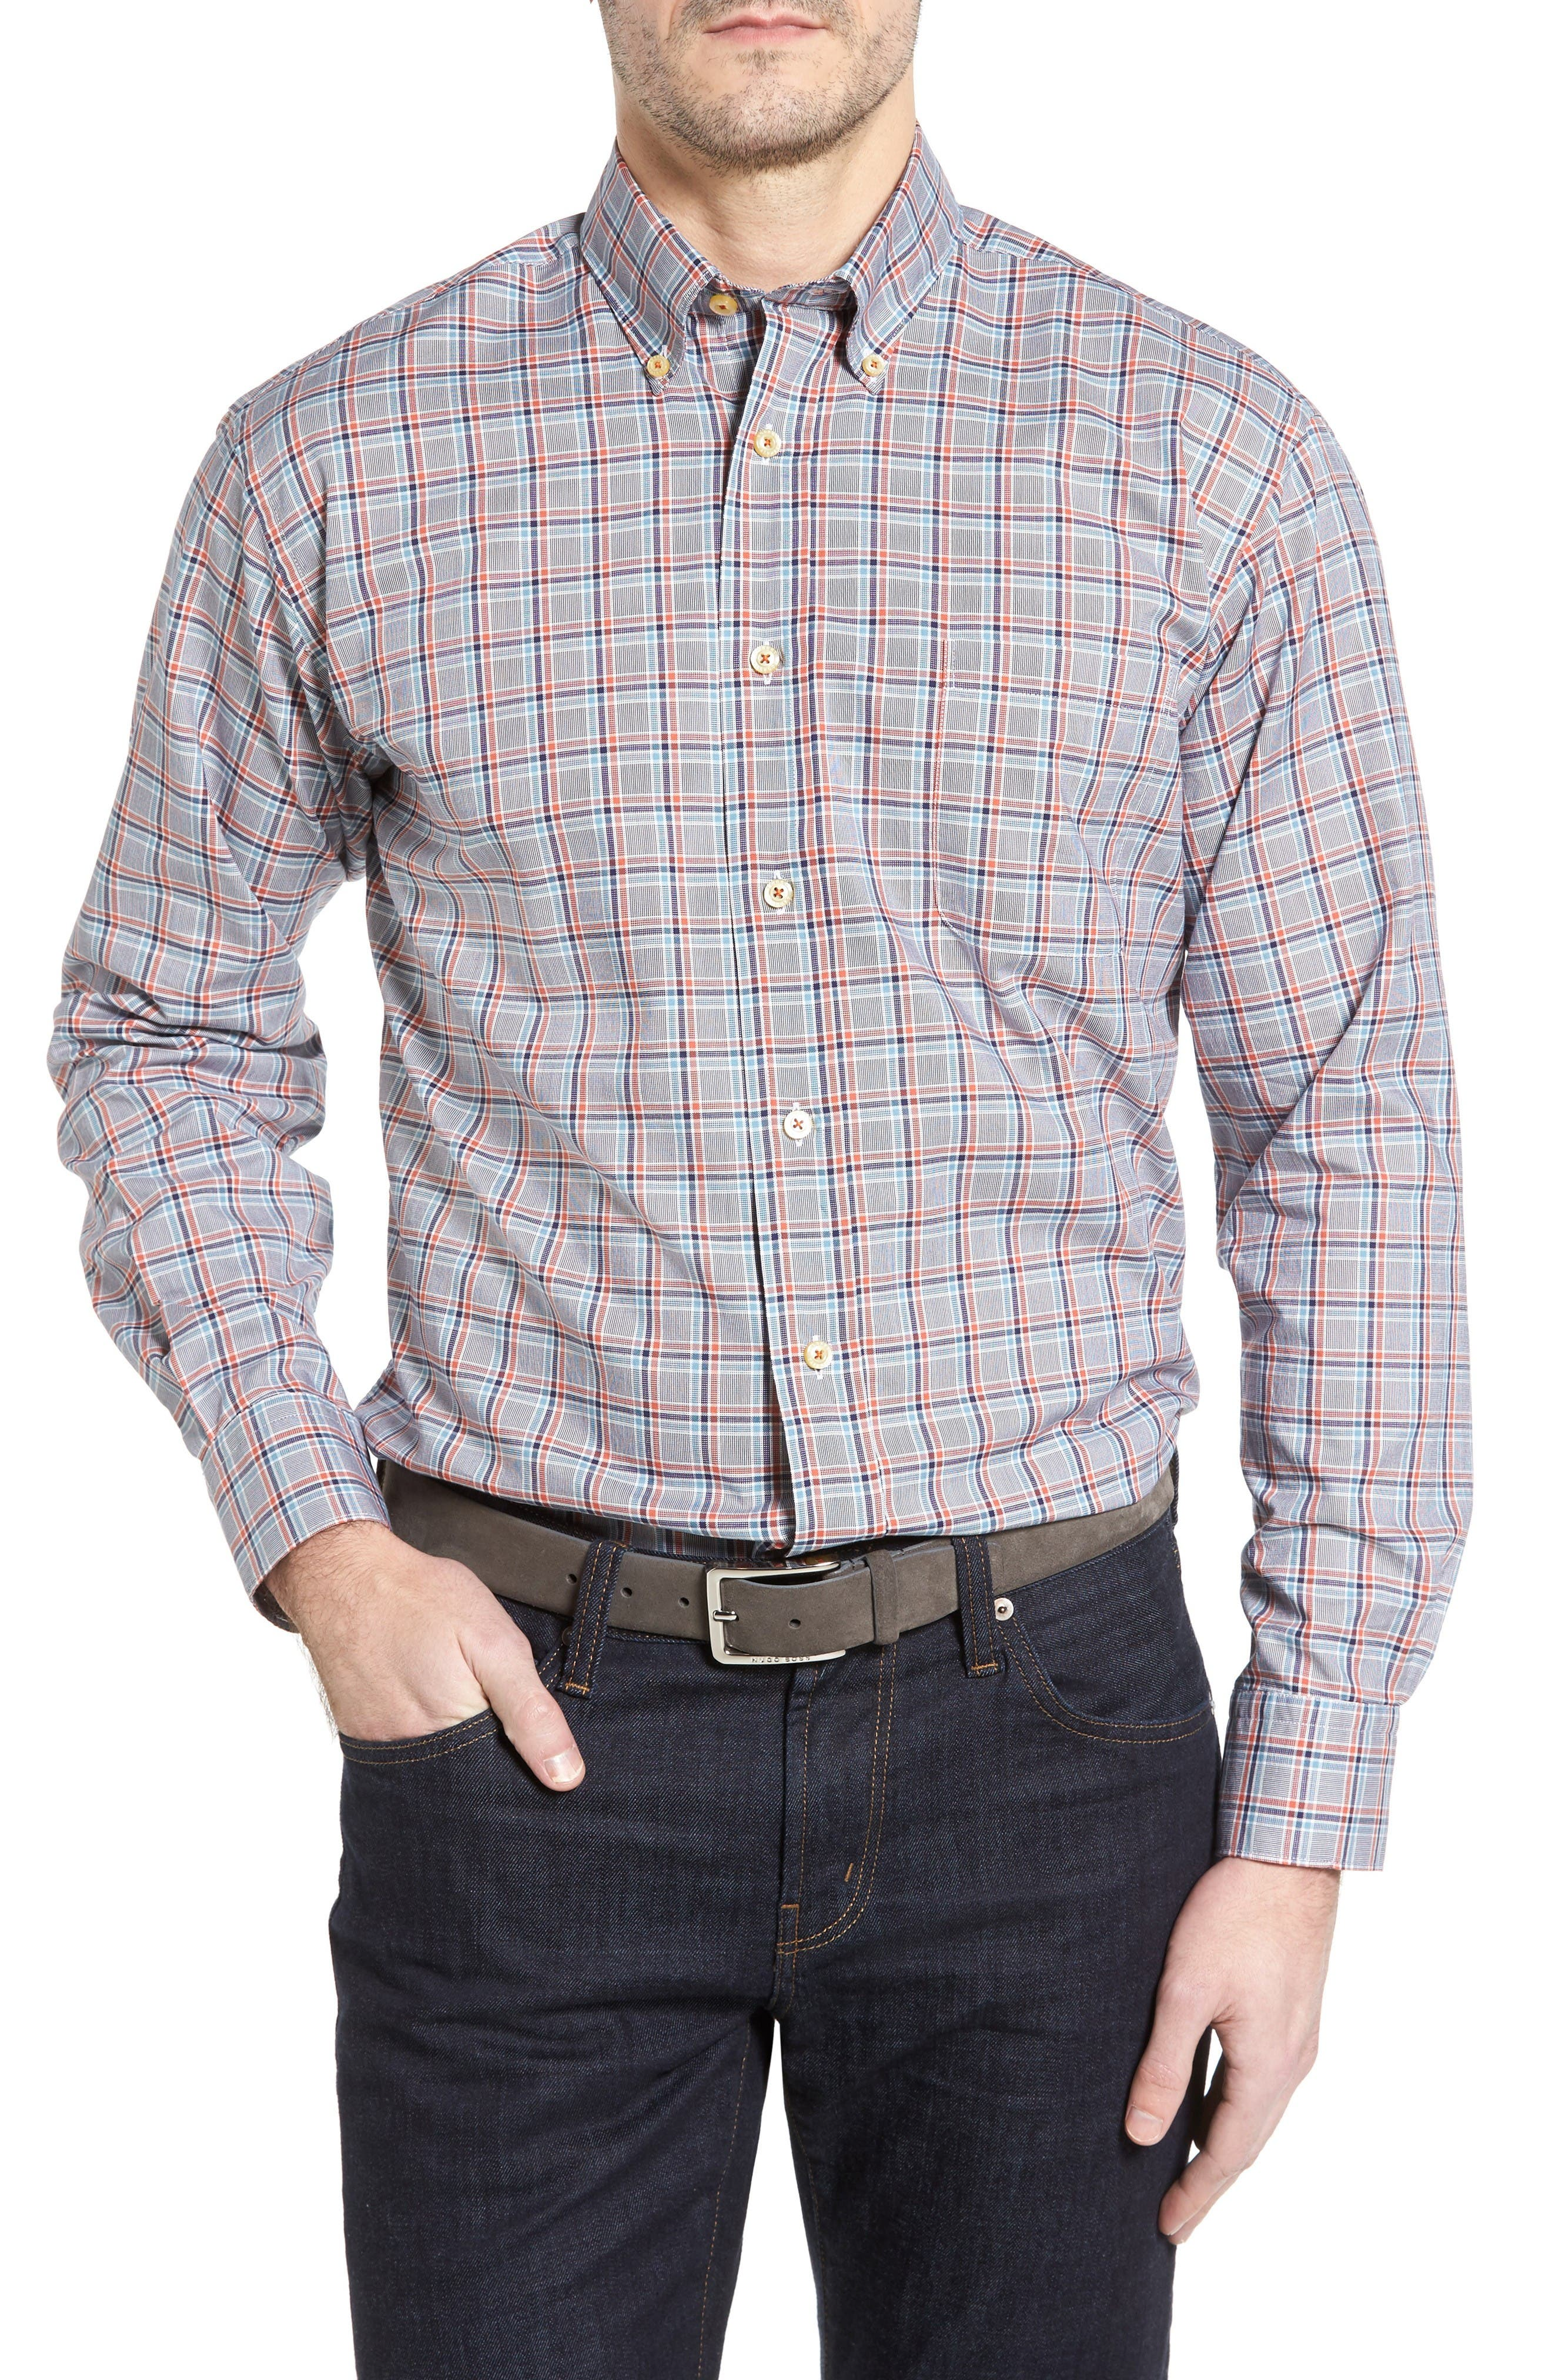 Anderson Classic Fit Plaid Oxford Sport Shirt,                             Main thumbnail 1, color,                             Navy